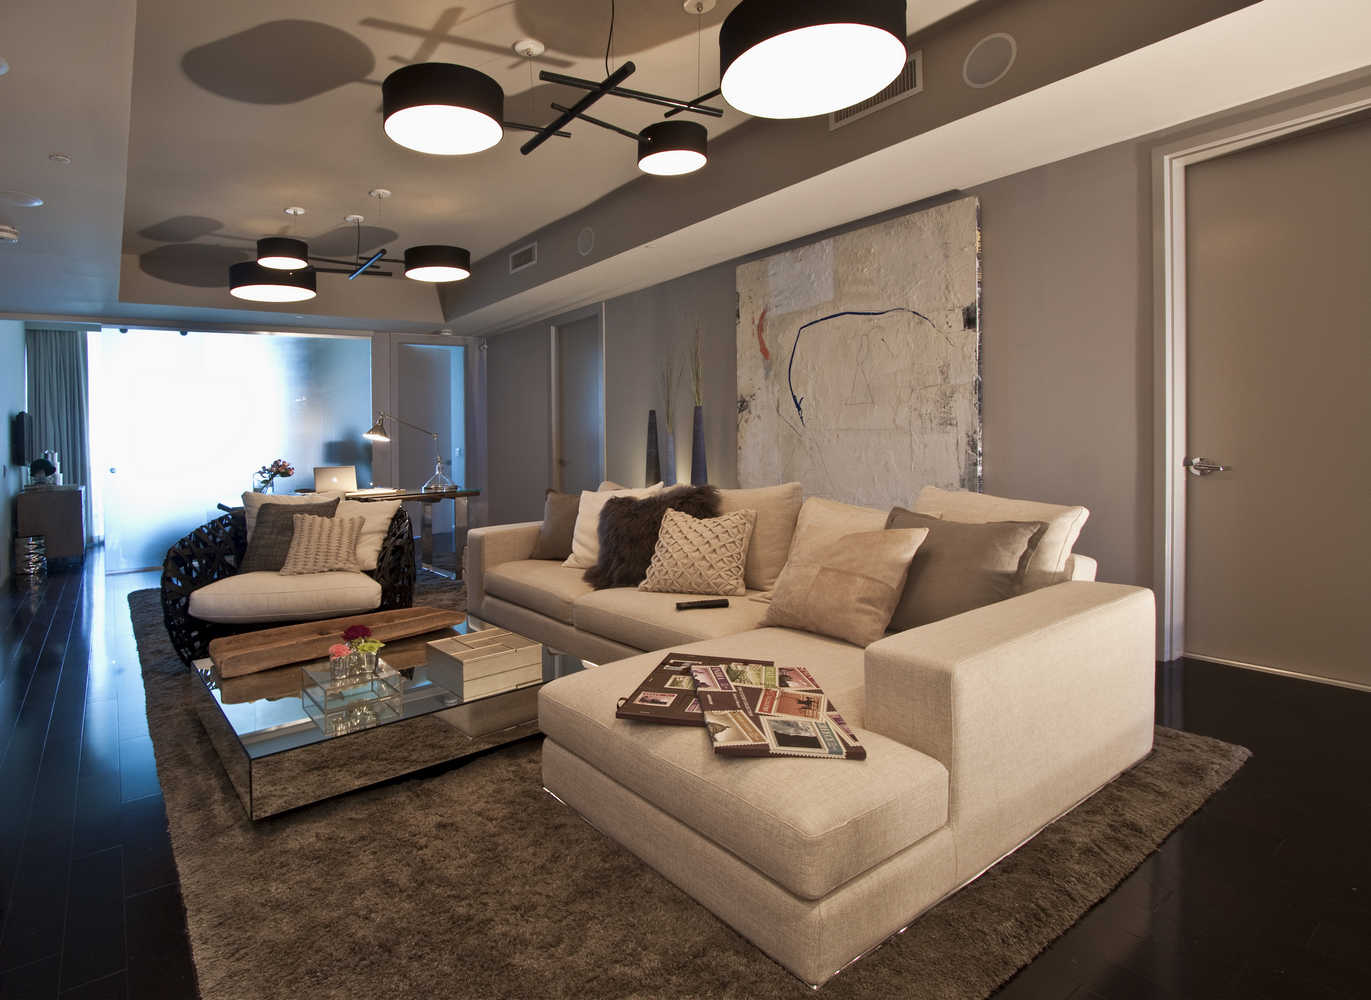 Family rooms residential interior design from dkor interiors - Family room interior design ...